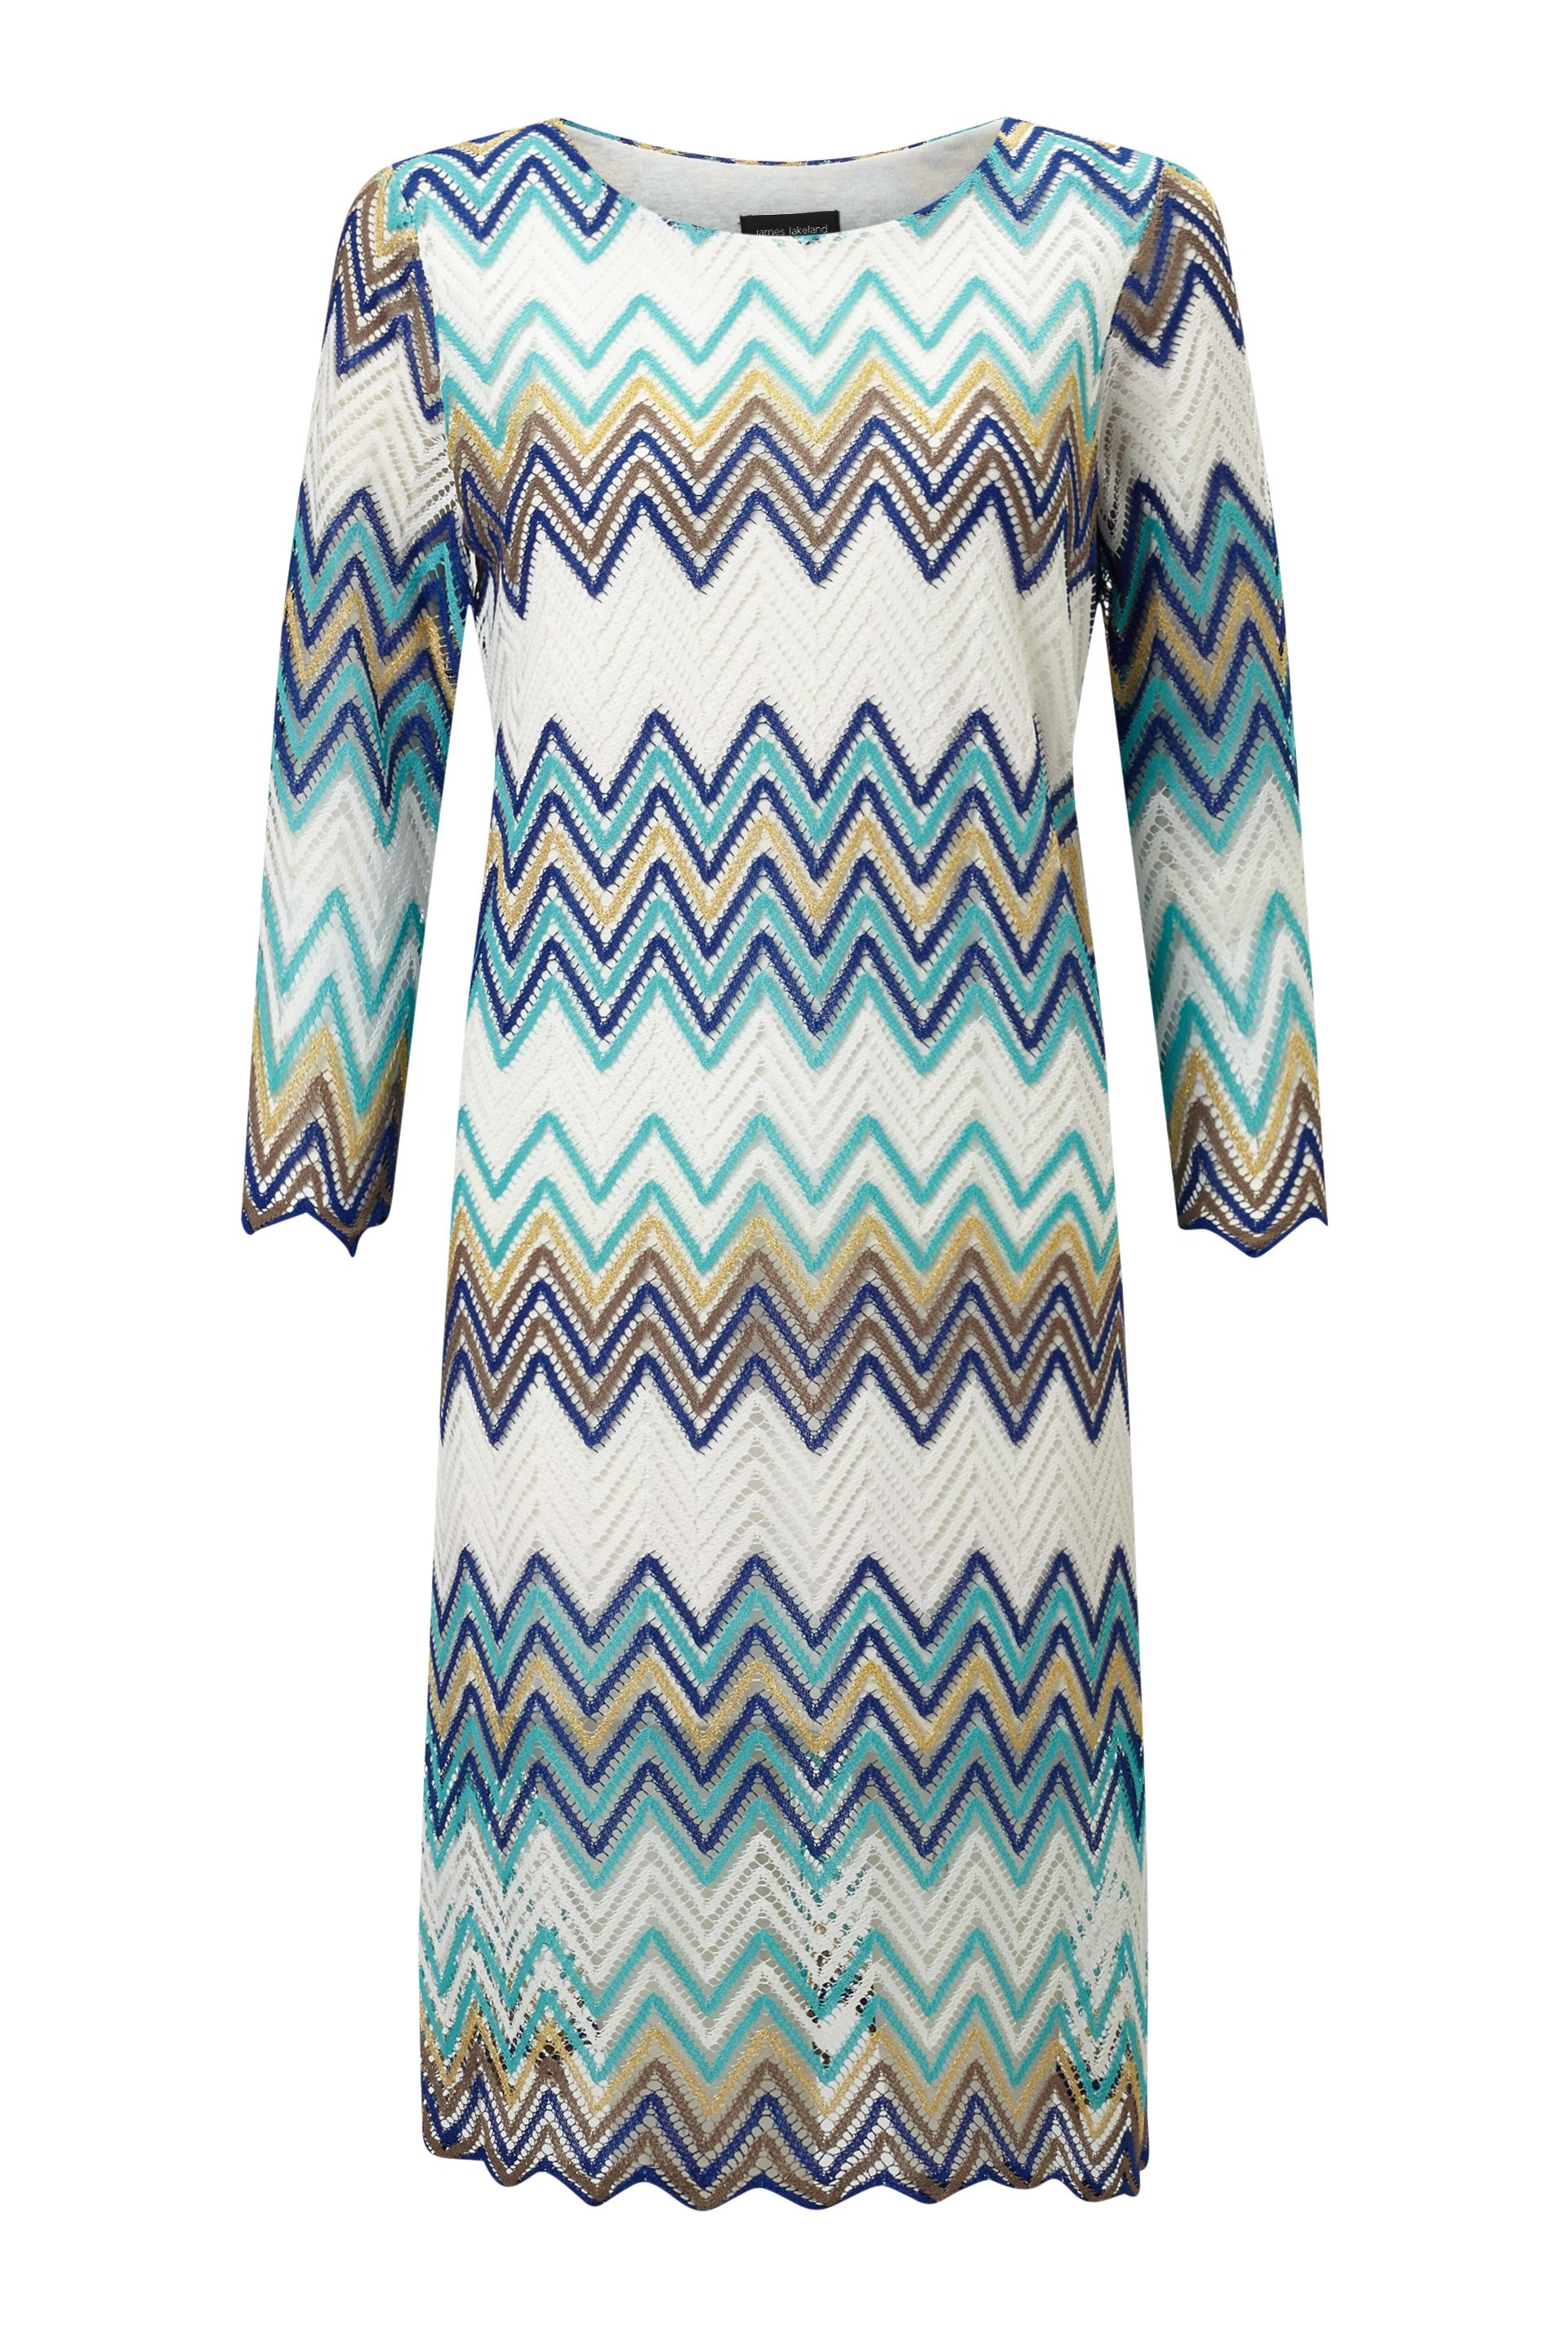 James Lakeland Zig Zag Lace Dress, Blue